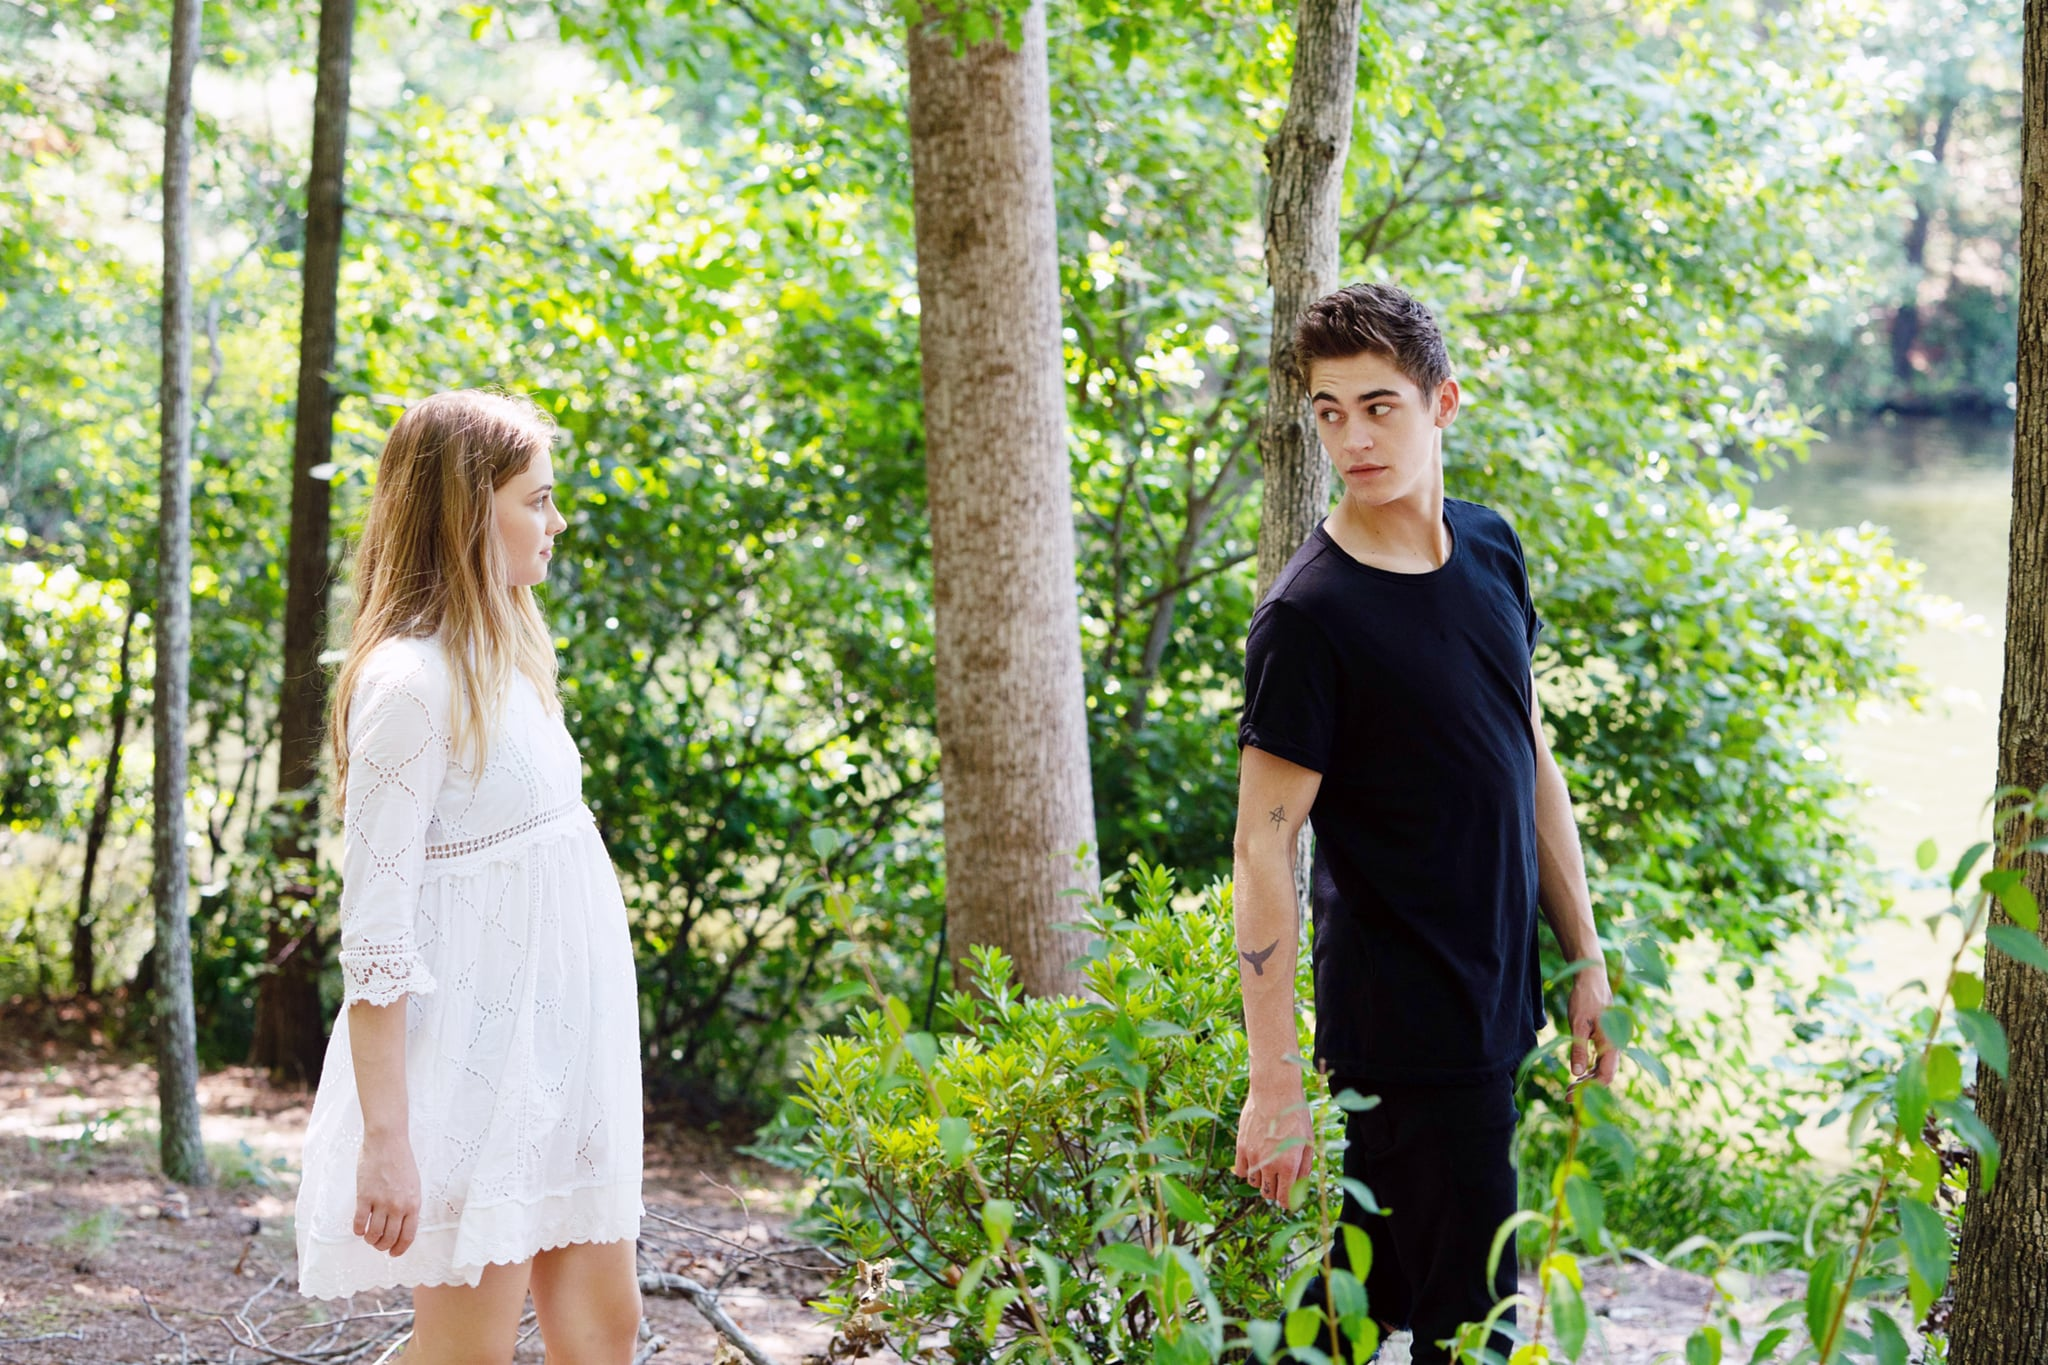 AFTER, from left: Josephine Langford, Hero Fiennes Tiffin, 2019. ph: Quantrell D. Colbert/  Aviron Pictures /courtesy Everett Collection